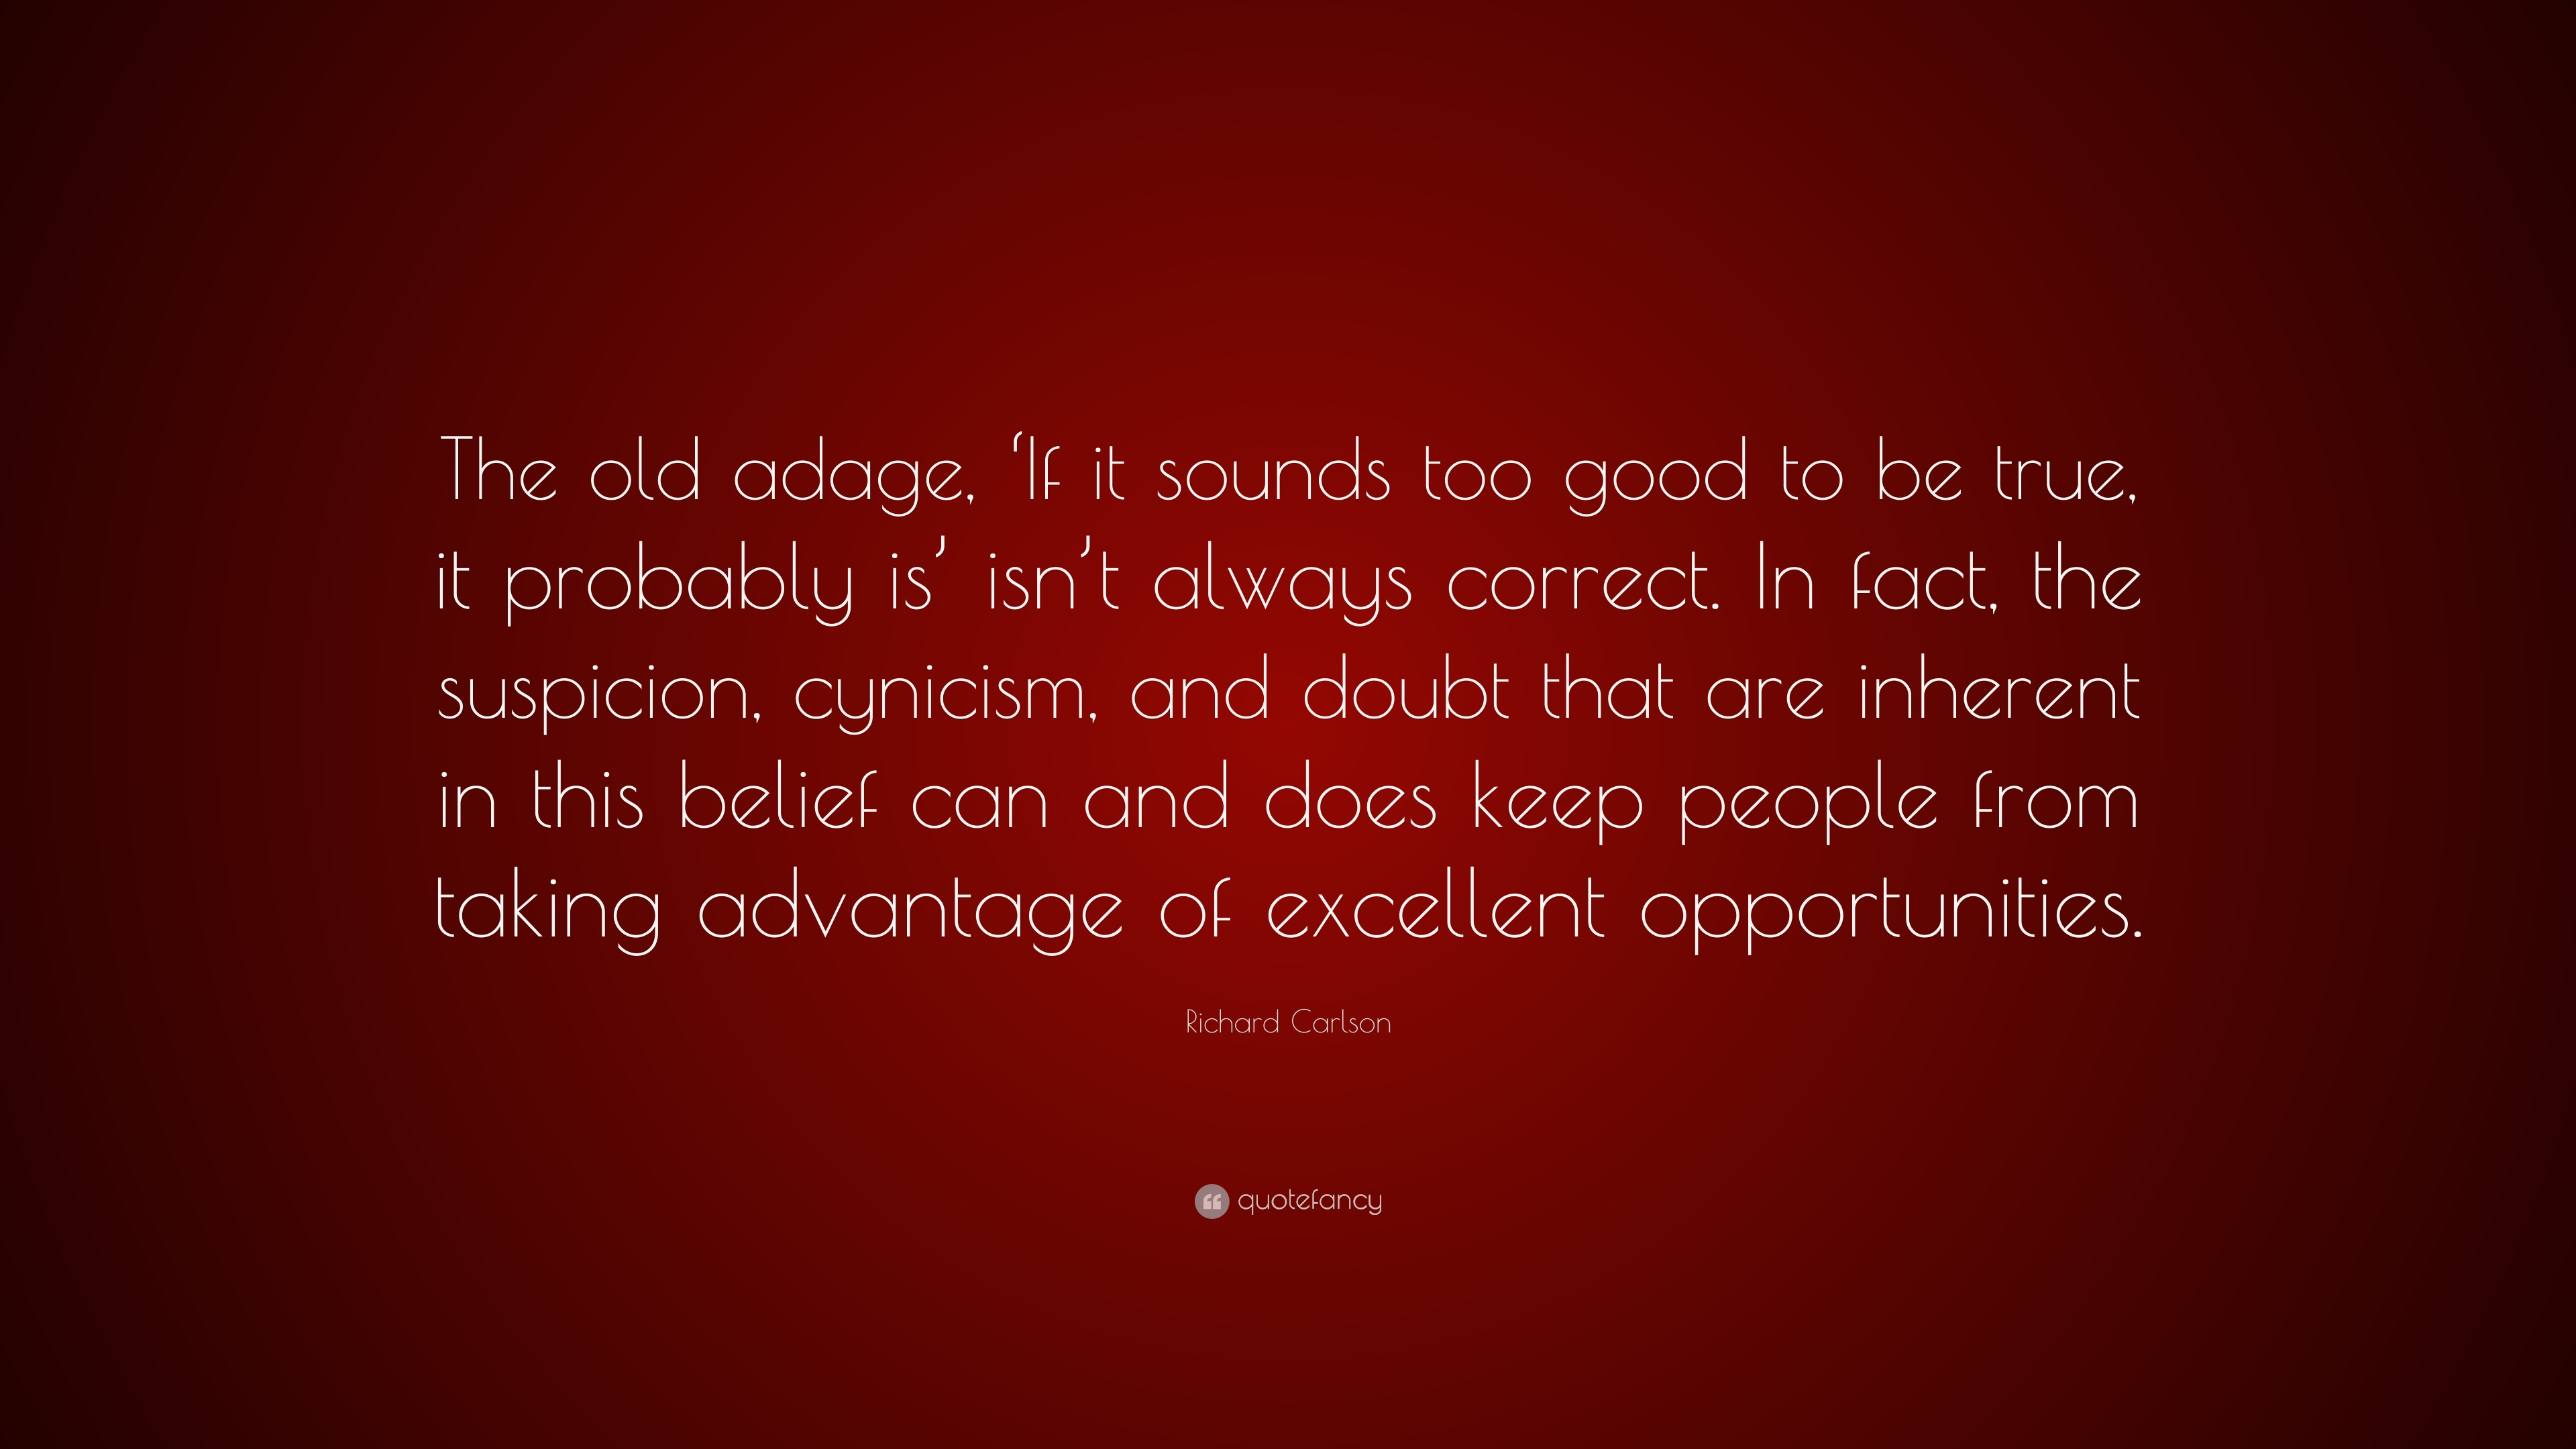 Richard Carlson Quote The Old Adage If It Sounds Too Good To Be